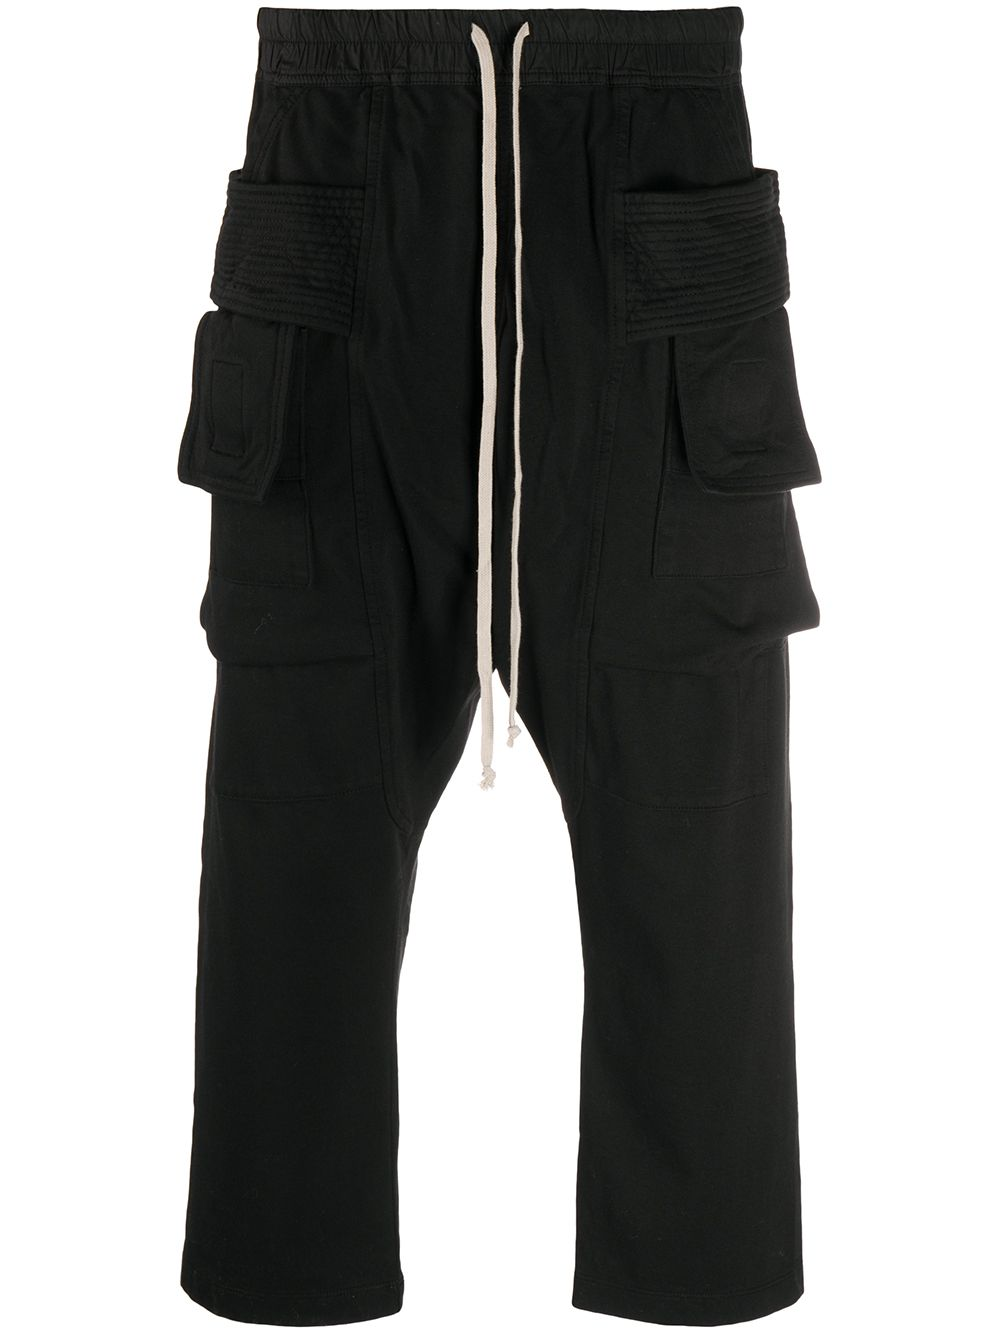 RICK OWENS DRKSHDW Cropped Drawstring Trousers Black - Maison De Fashion